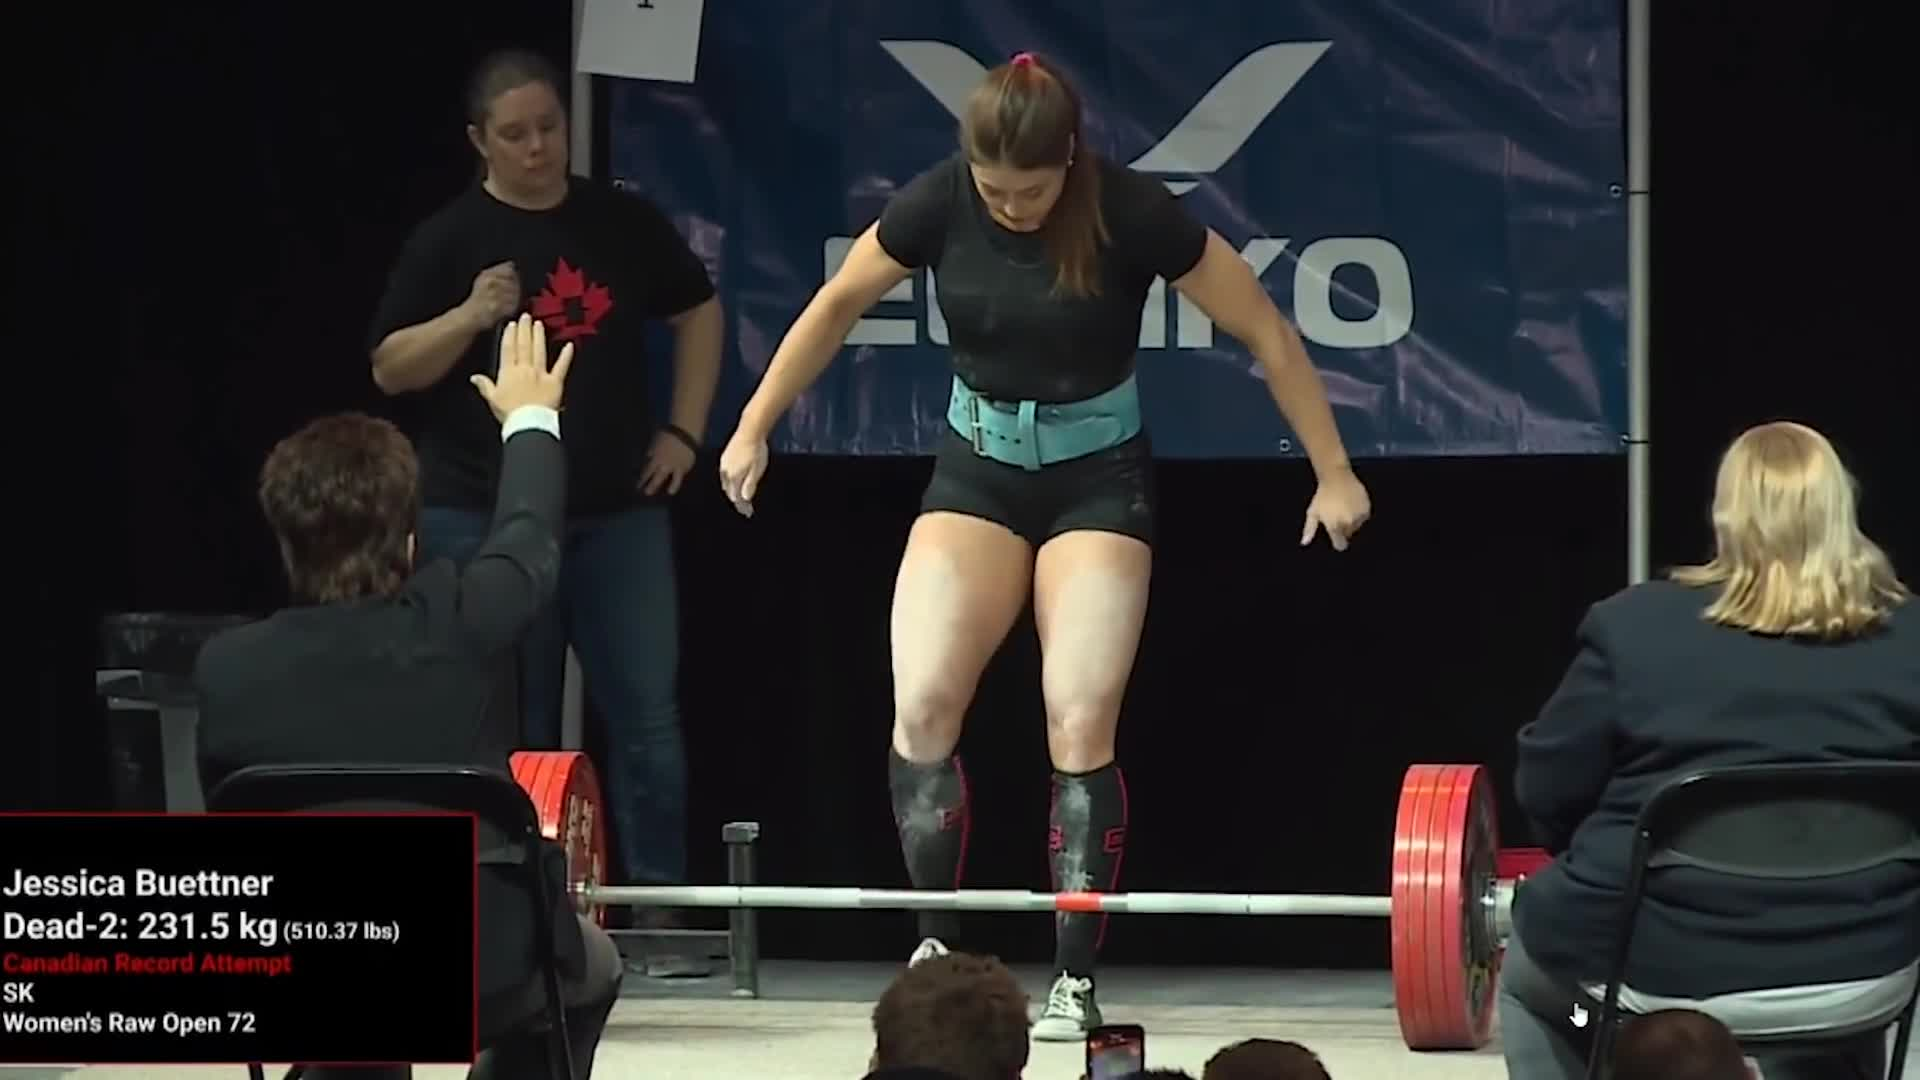 SquaredCircle, wrestling, Canadian record deadlift attempt GIFs